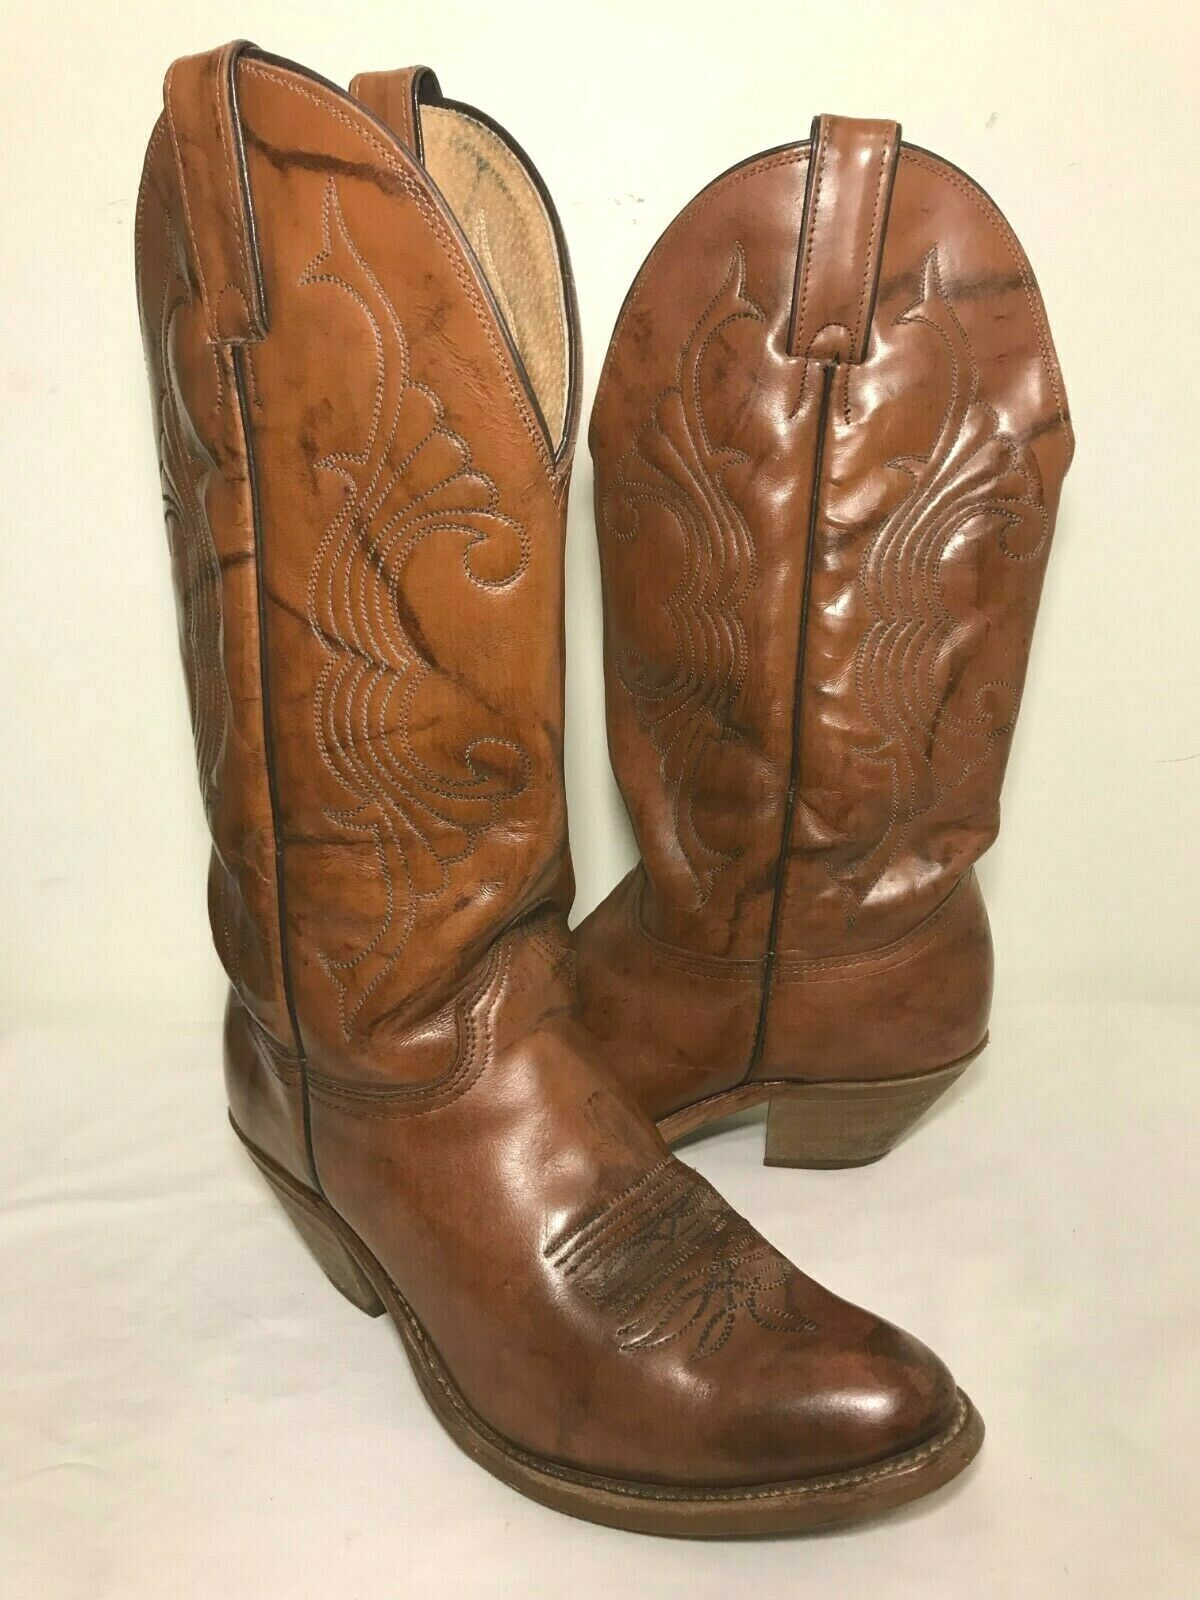 ABILENE Cowboy Western Boots Womens Sz 8M Brown Leather Pull On USA